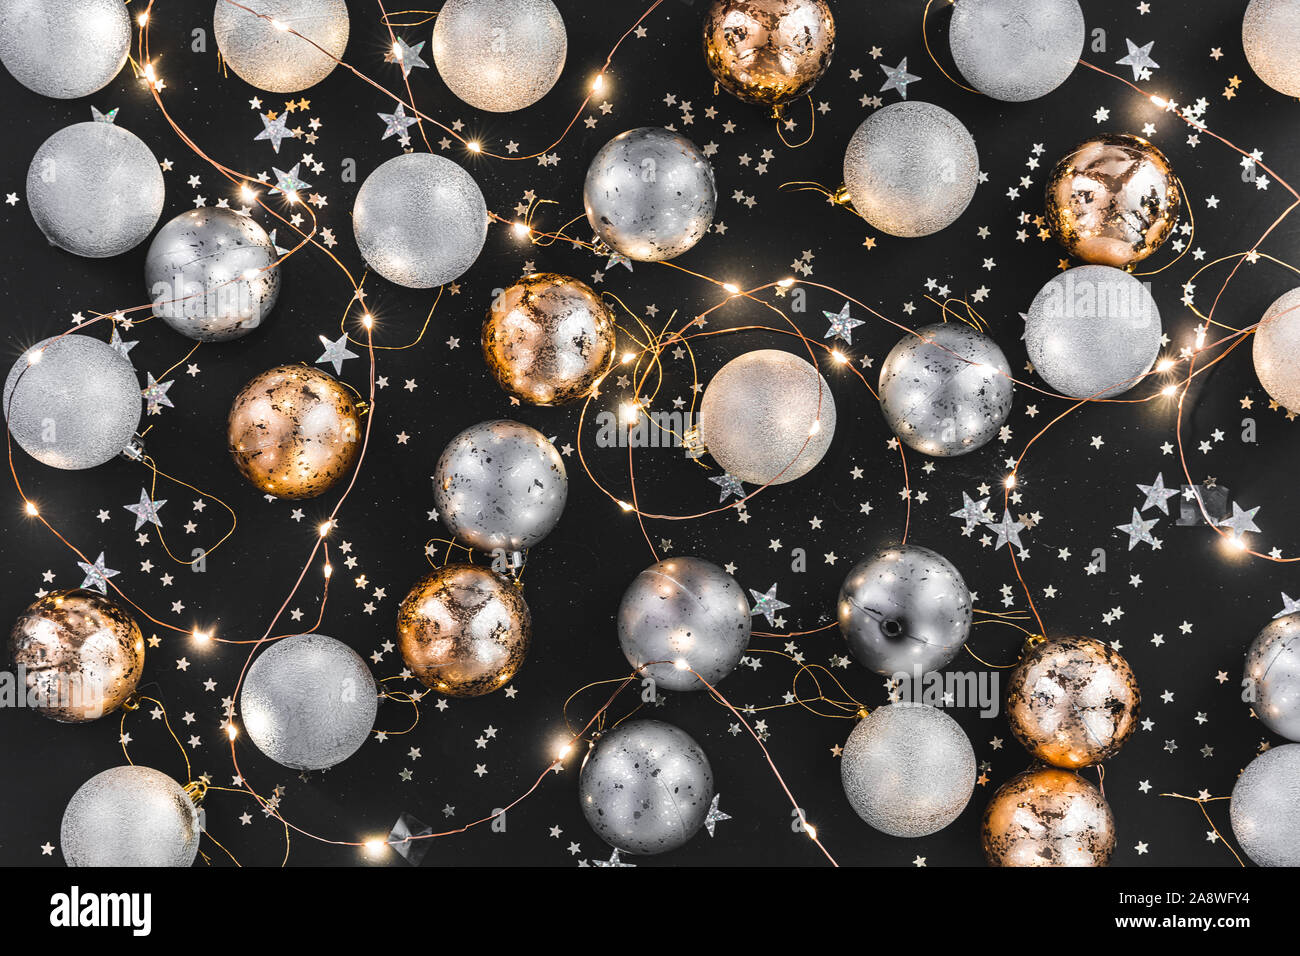 Merry Christmas Images In Gold And Silver 2020 Happy New year 2020. Merry Christmas and Happy Holidays greeting